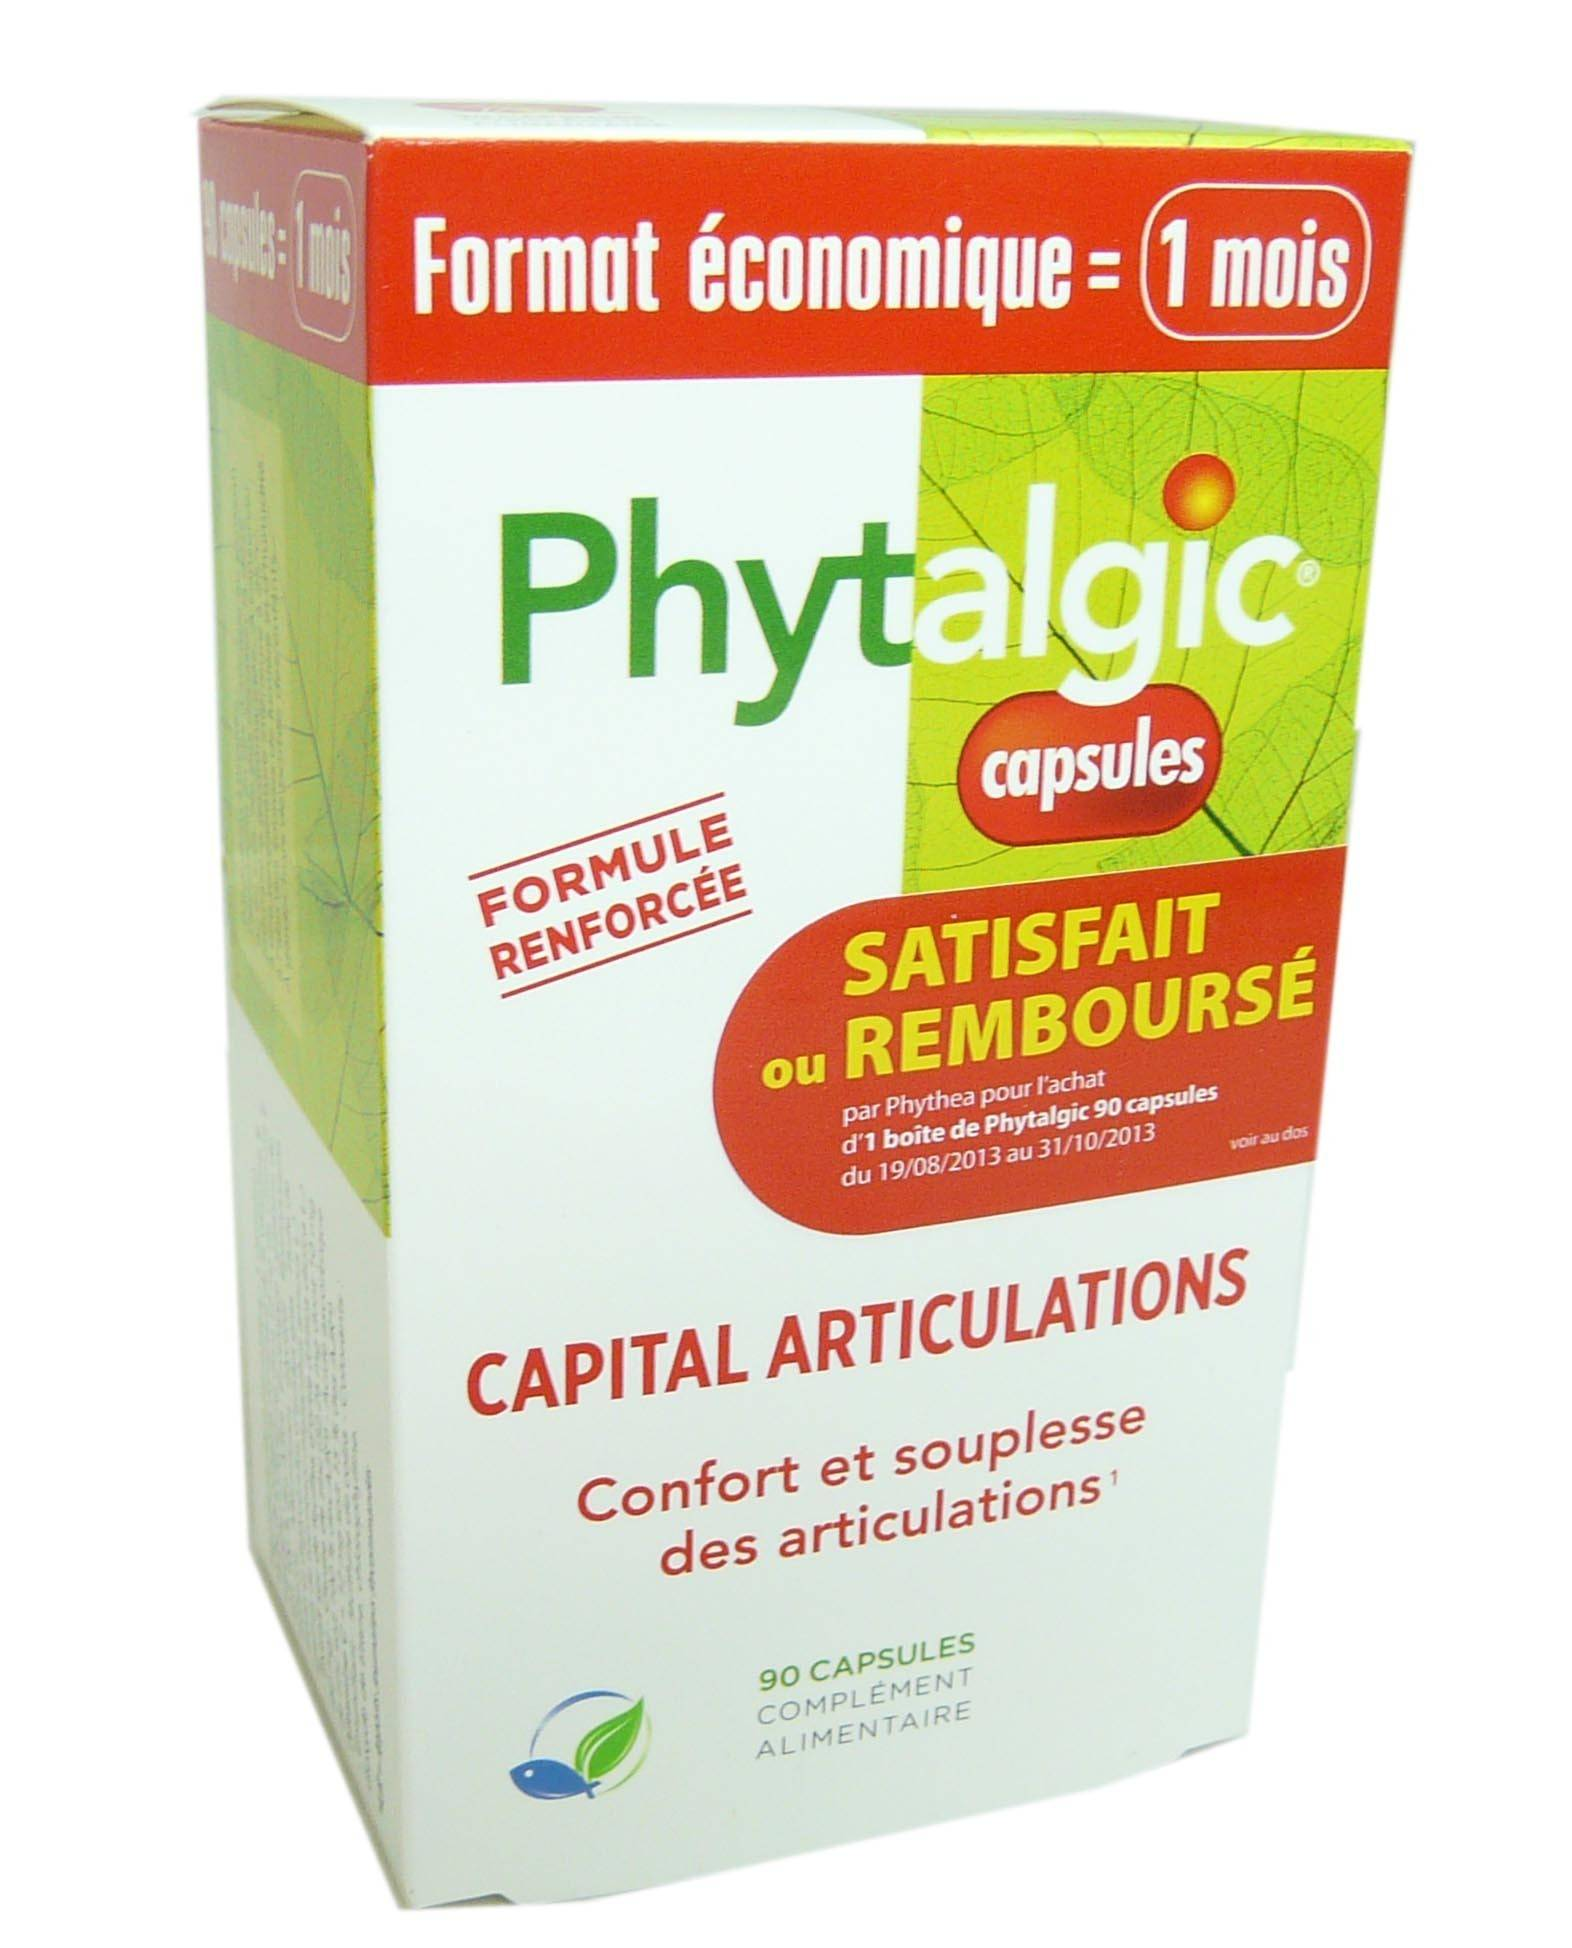 PHYTEA Phytalgic format eco 1 mois 90 capsules